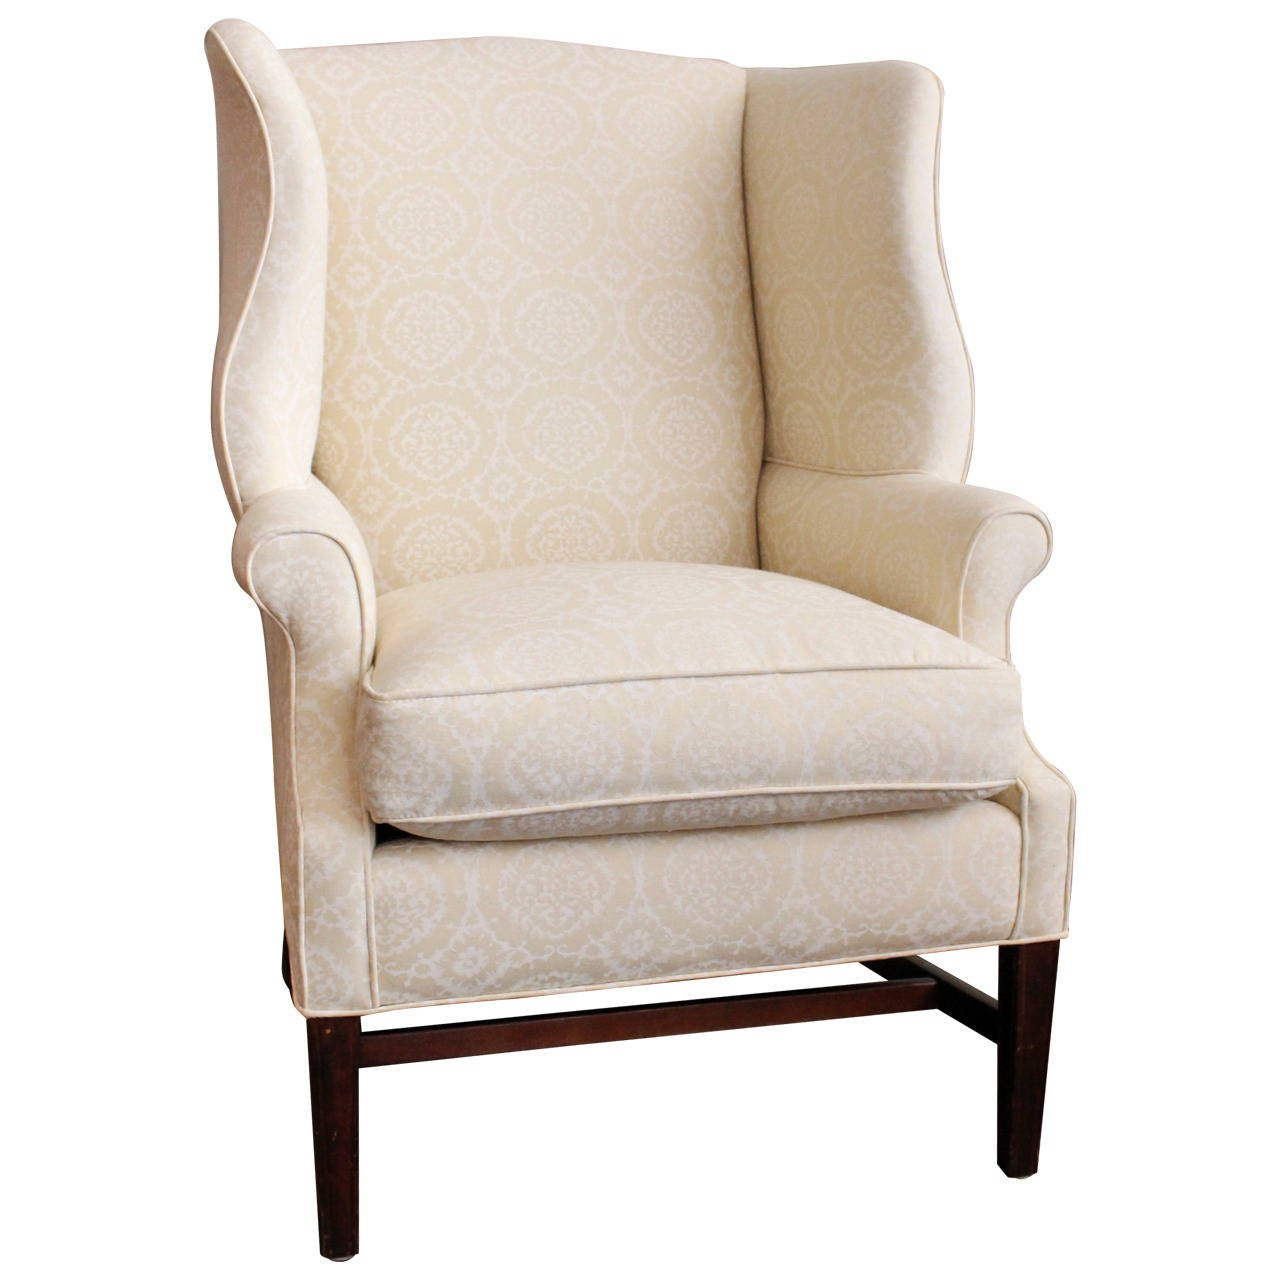 Antique Wingback Chairs Related Keywords & Suggestions